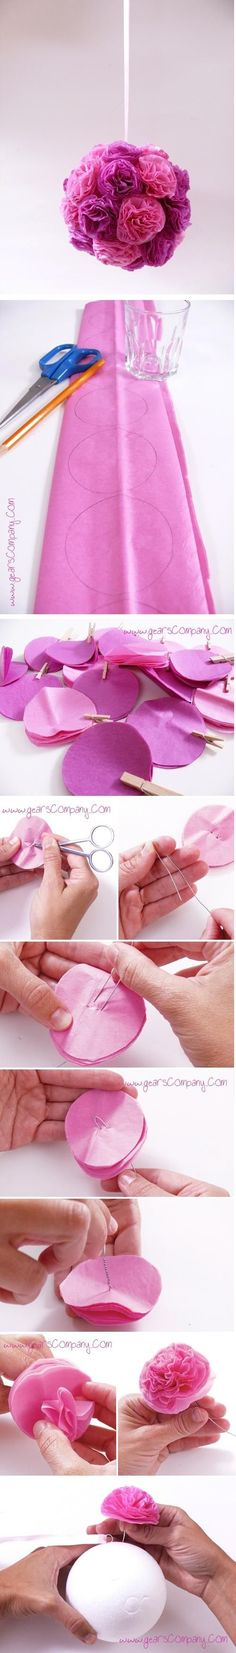 DIY Rosette pendant #diy #crafts